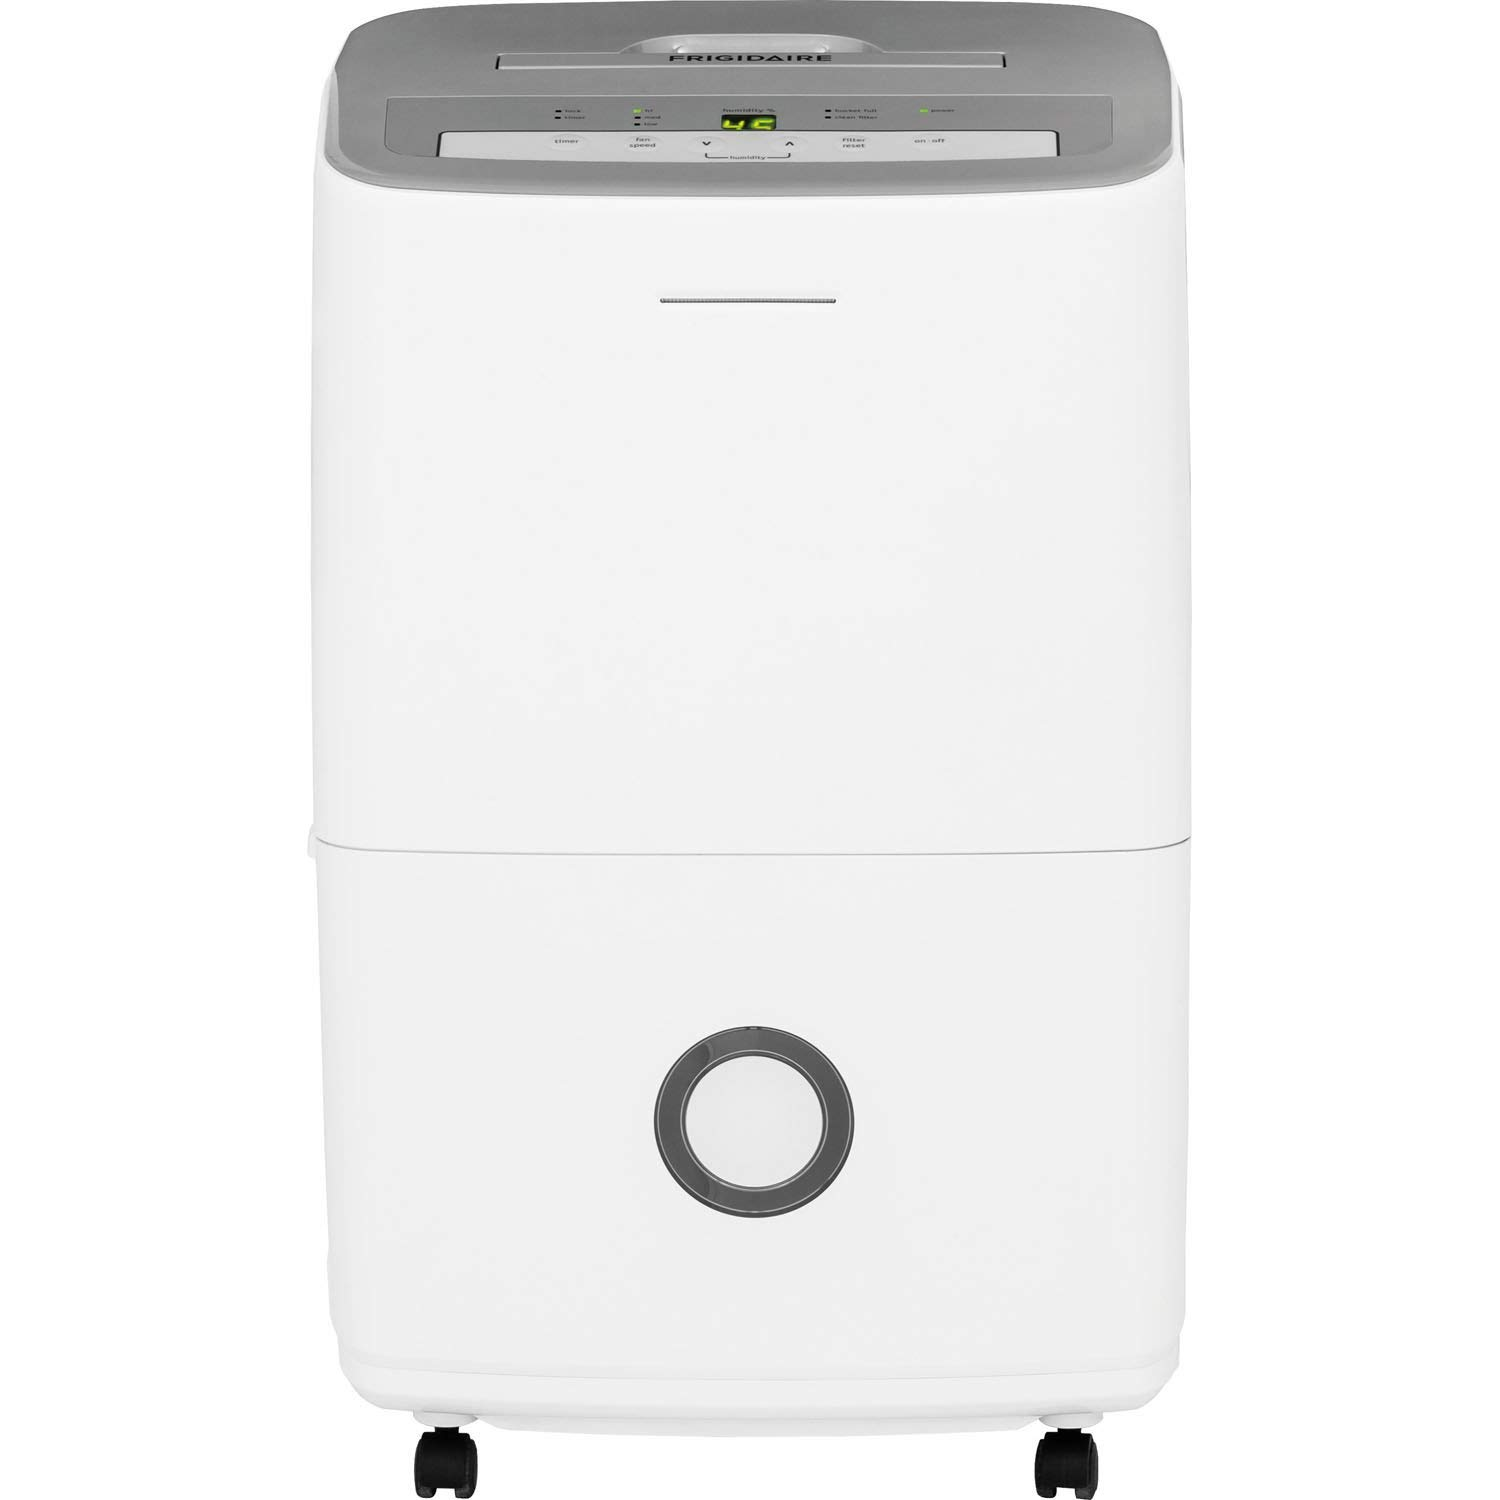 Best Dehumidifier for Mould: Frigidaire FFAD7033R1